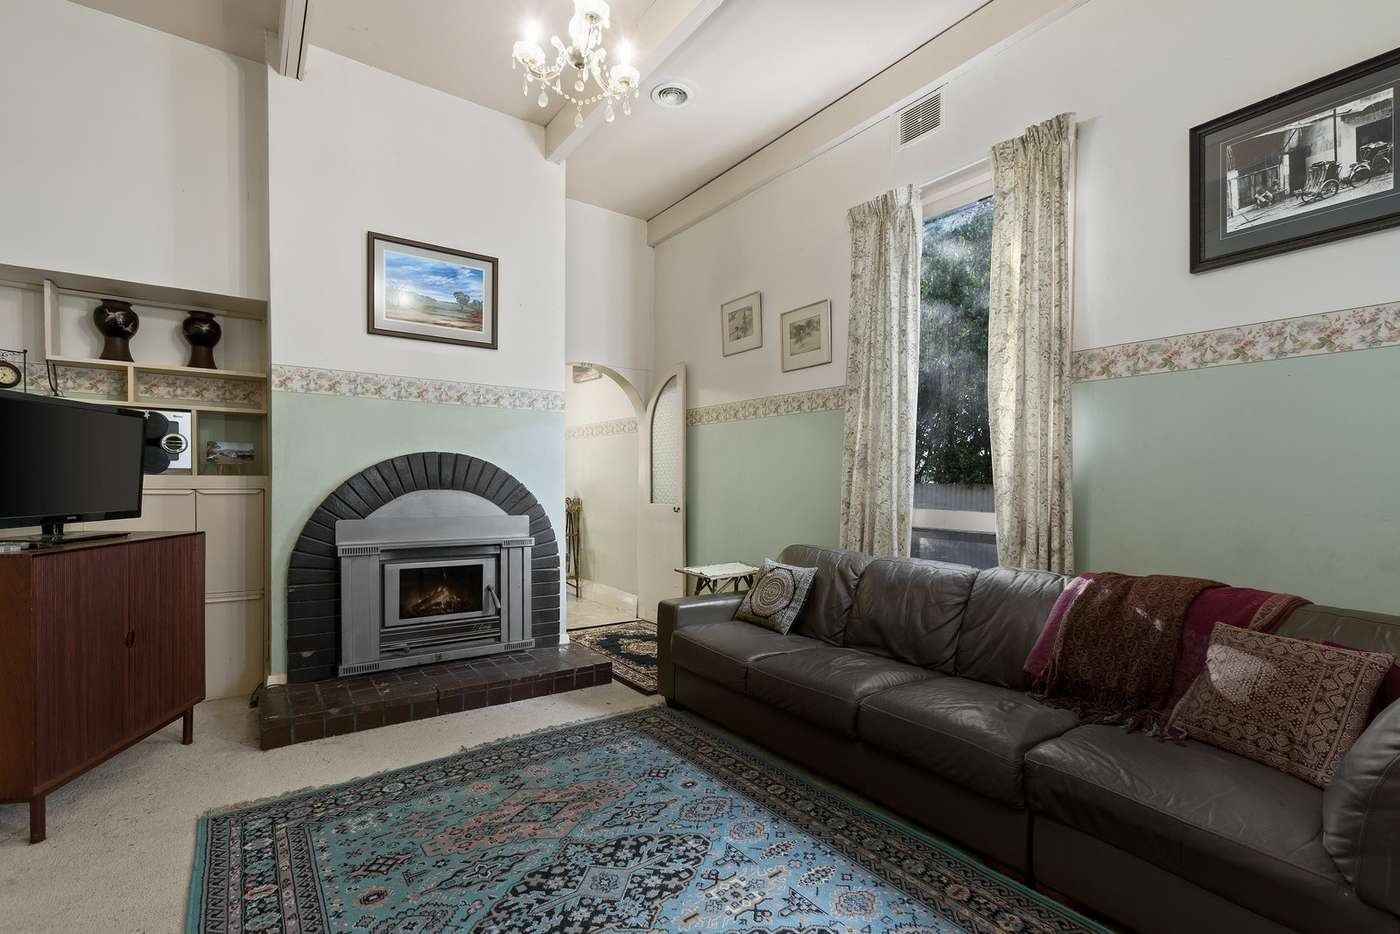 Sixth view of Homely house listing, 155 Hearn Street, Colac VIC 3250